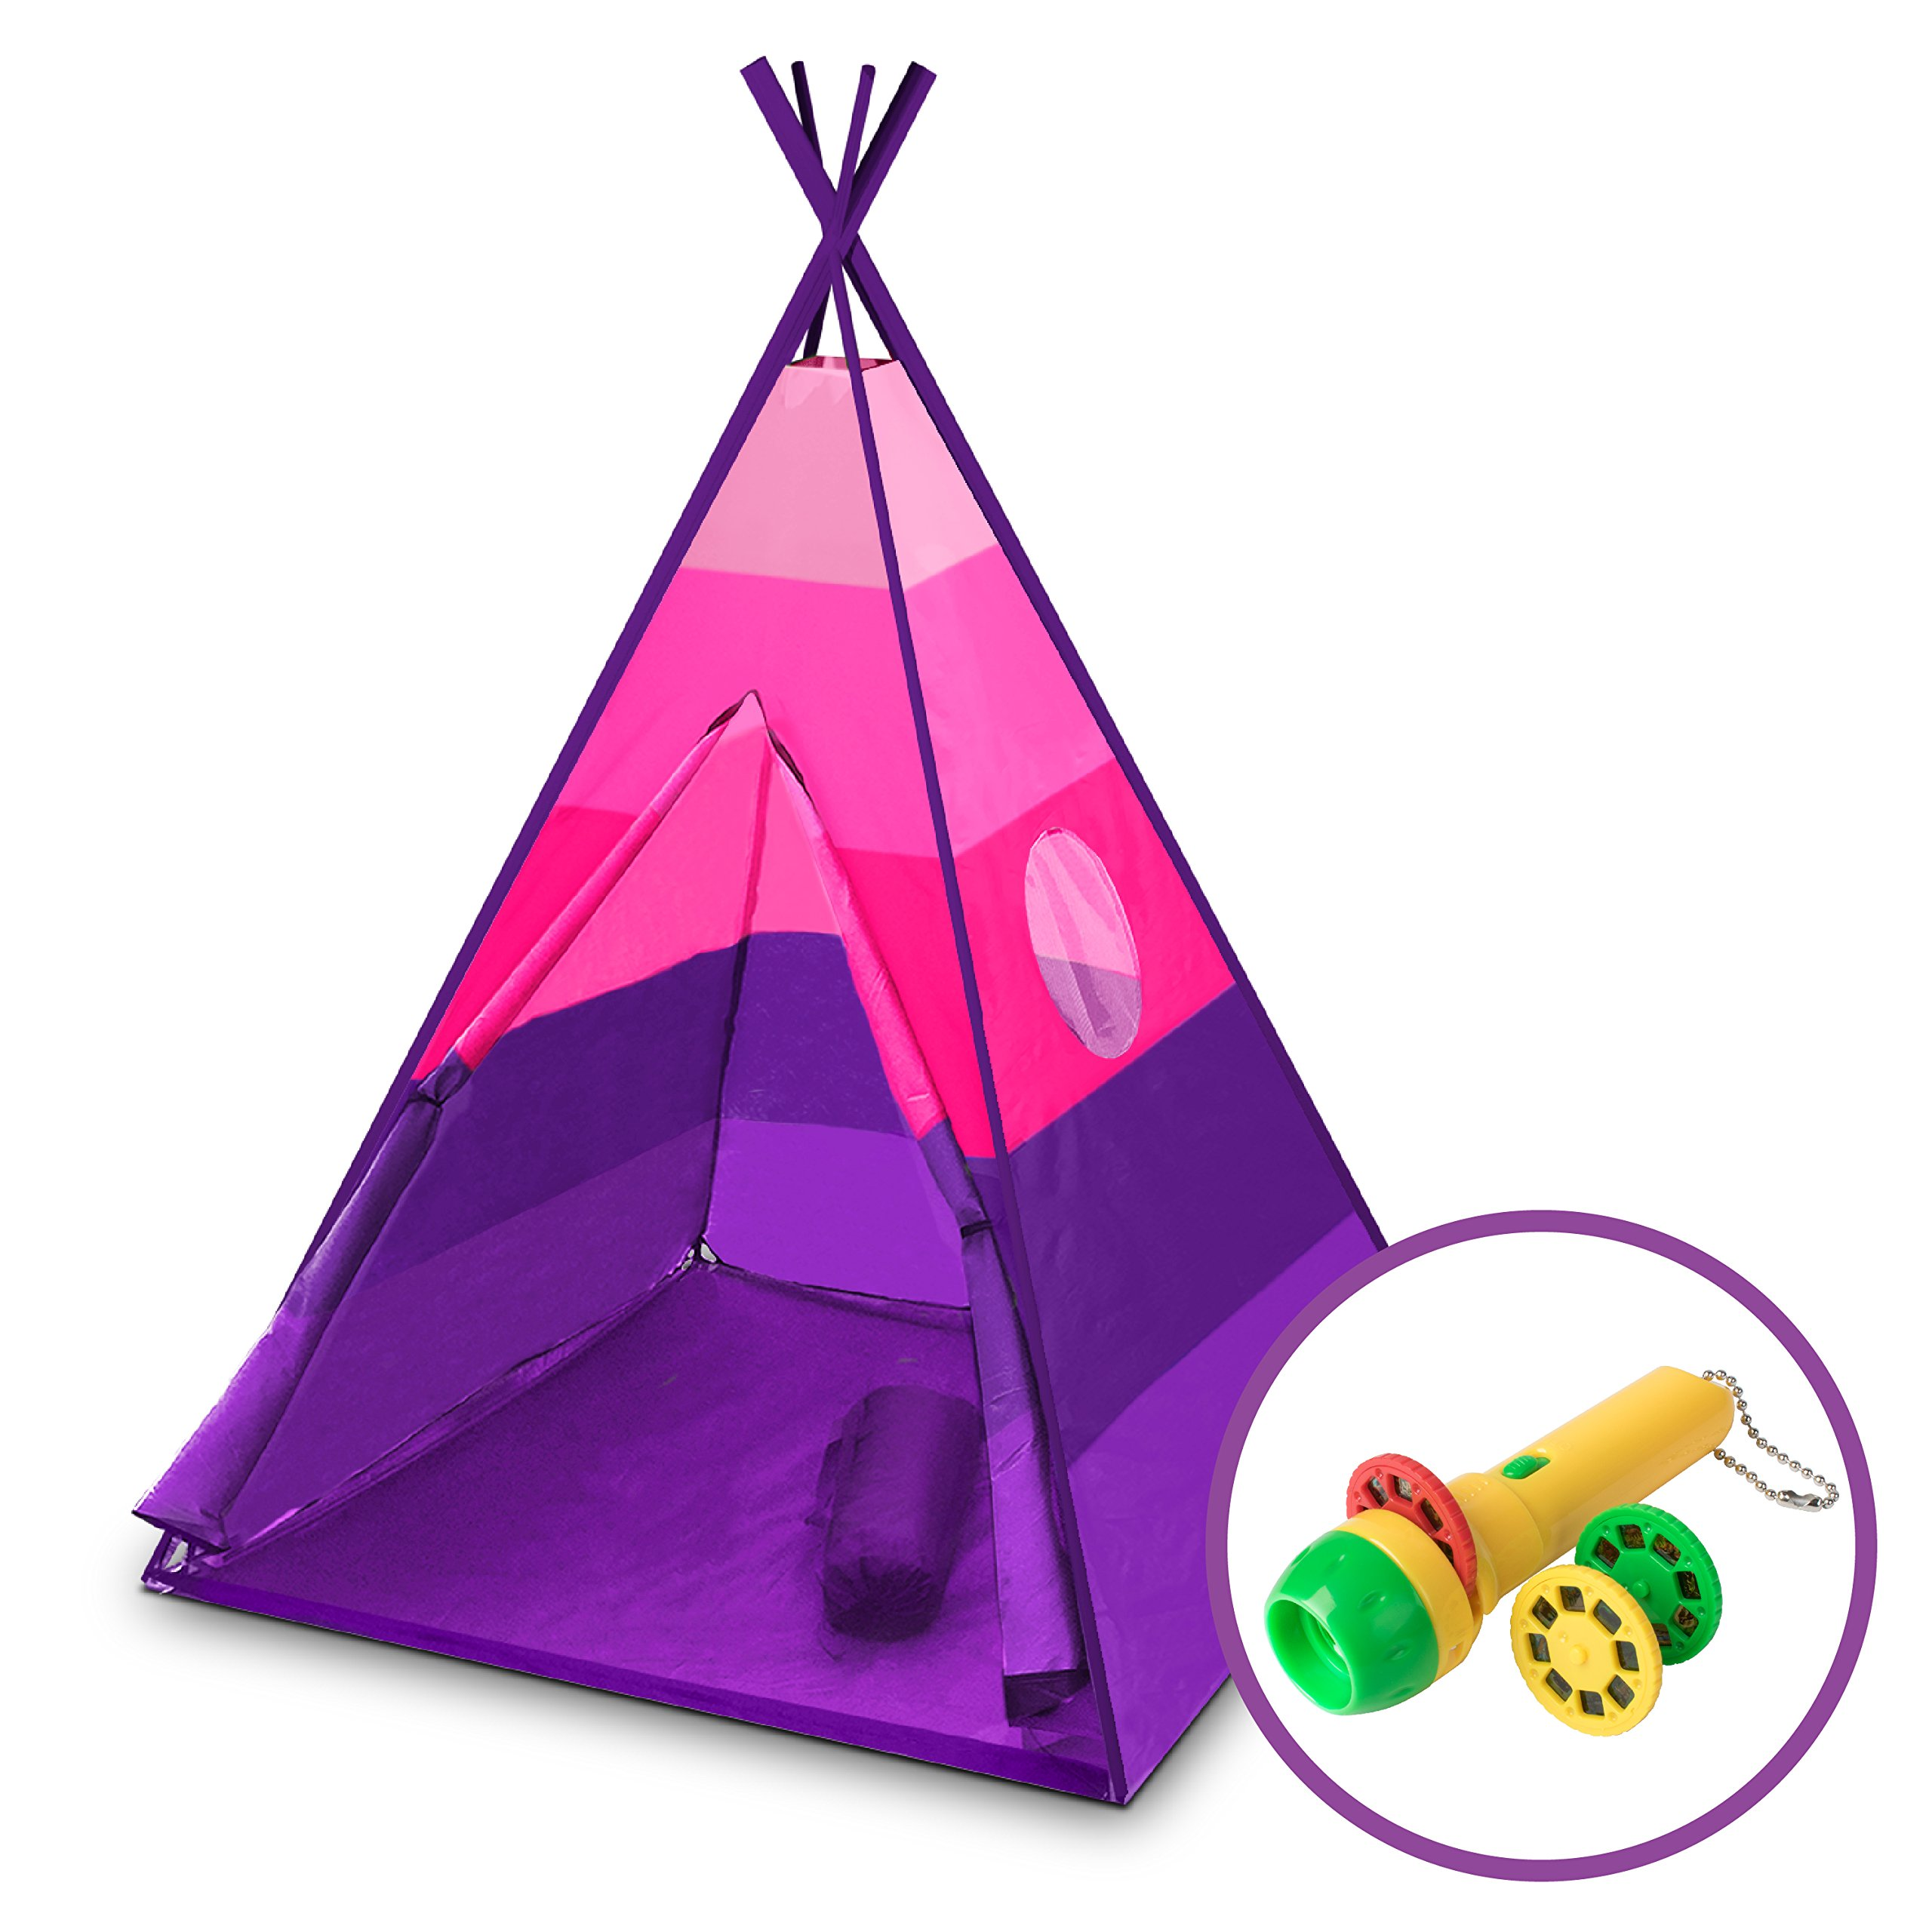 """USA Toyz Kids Teepee Tent - """"Happy Hut"""" Indoor Outdoor Teepee Tent for Kids w/ Safari Projector Light + EZ Pack Play Tent Tote for Kids Tent Travel (Pink)"""